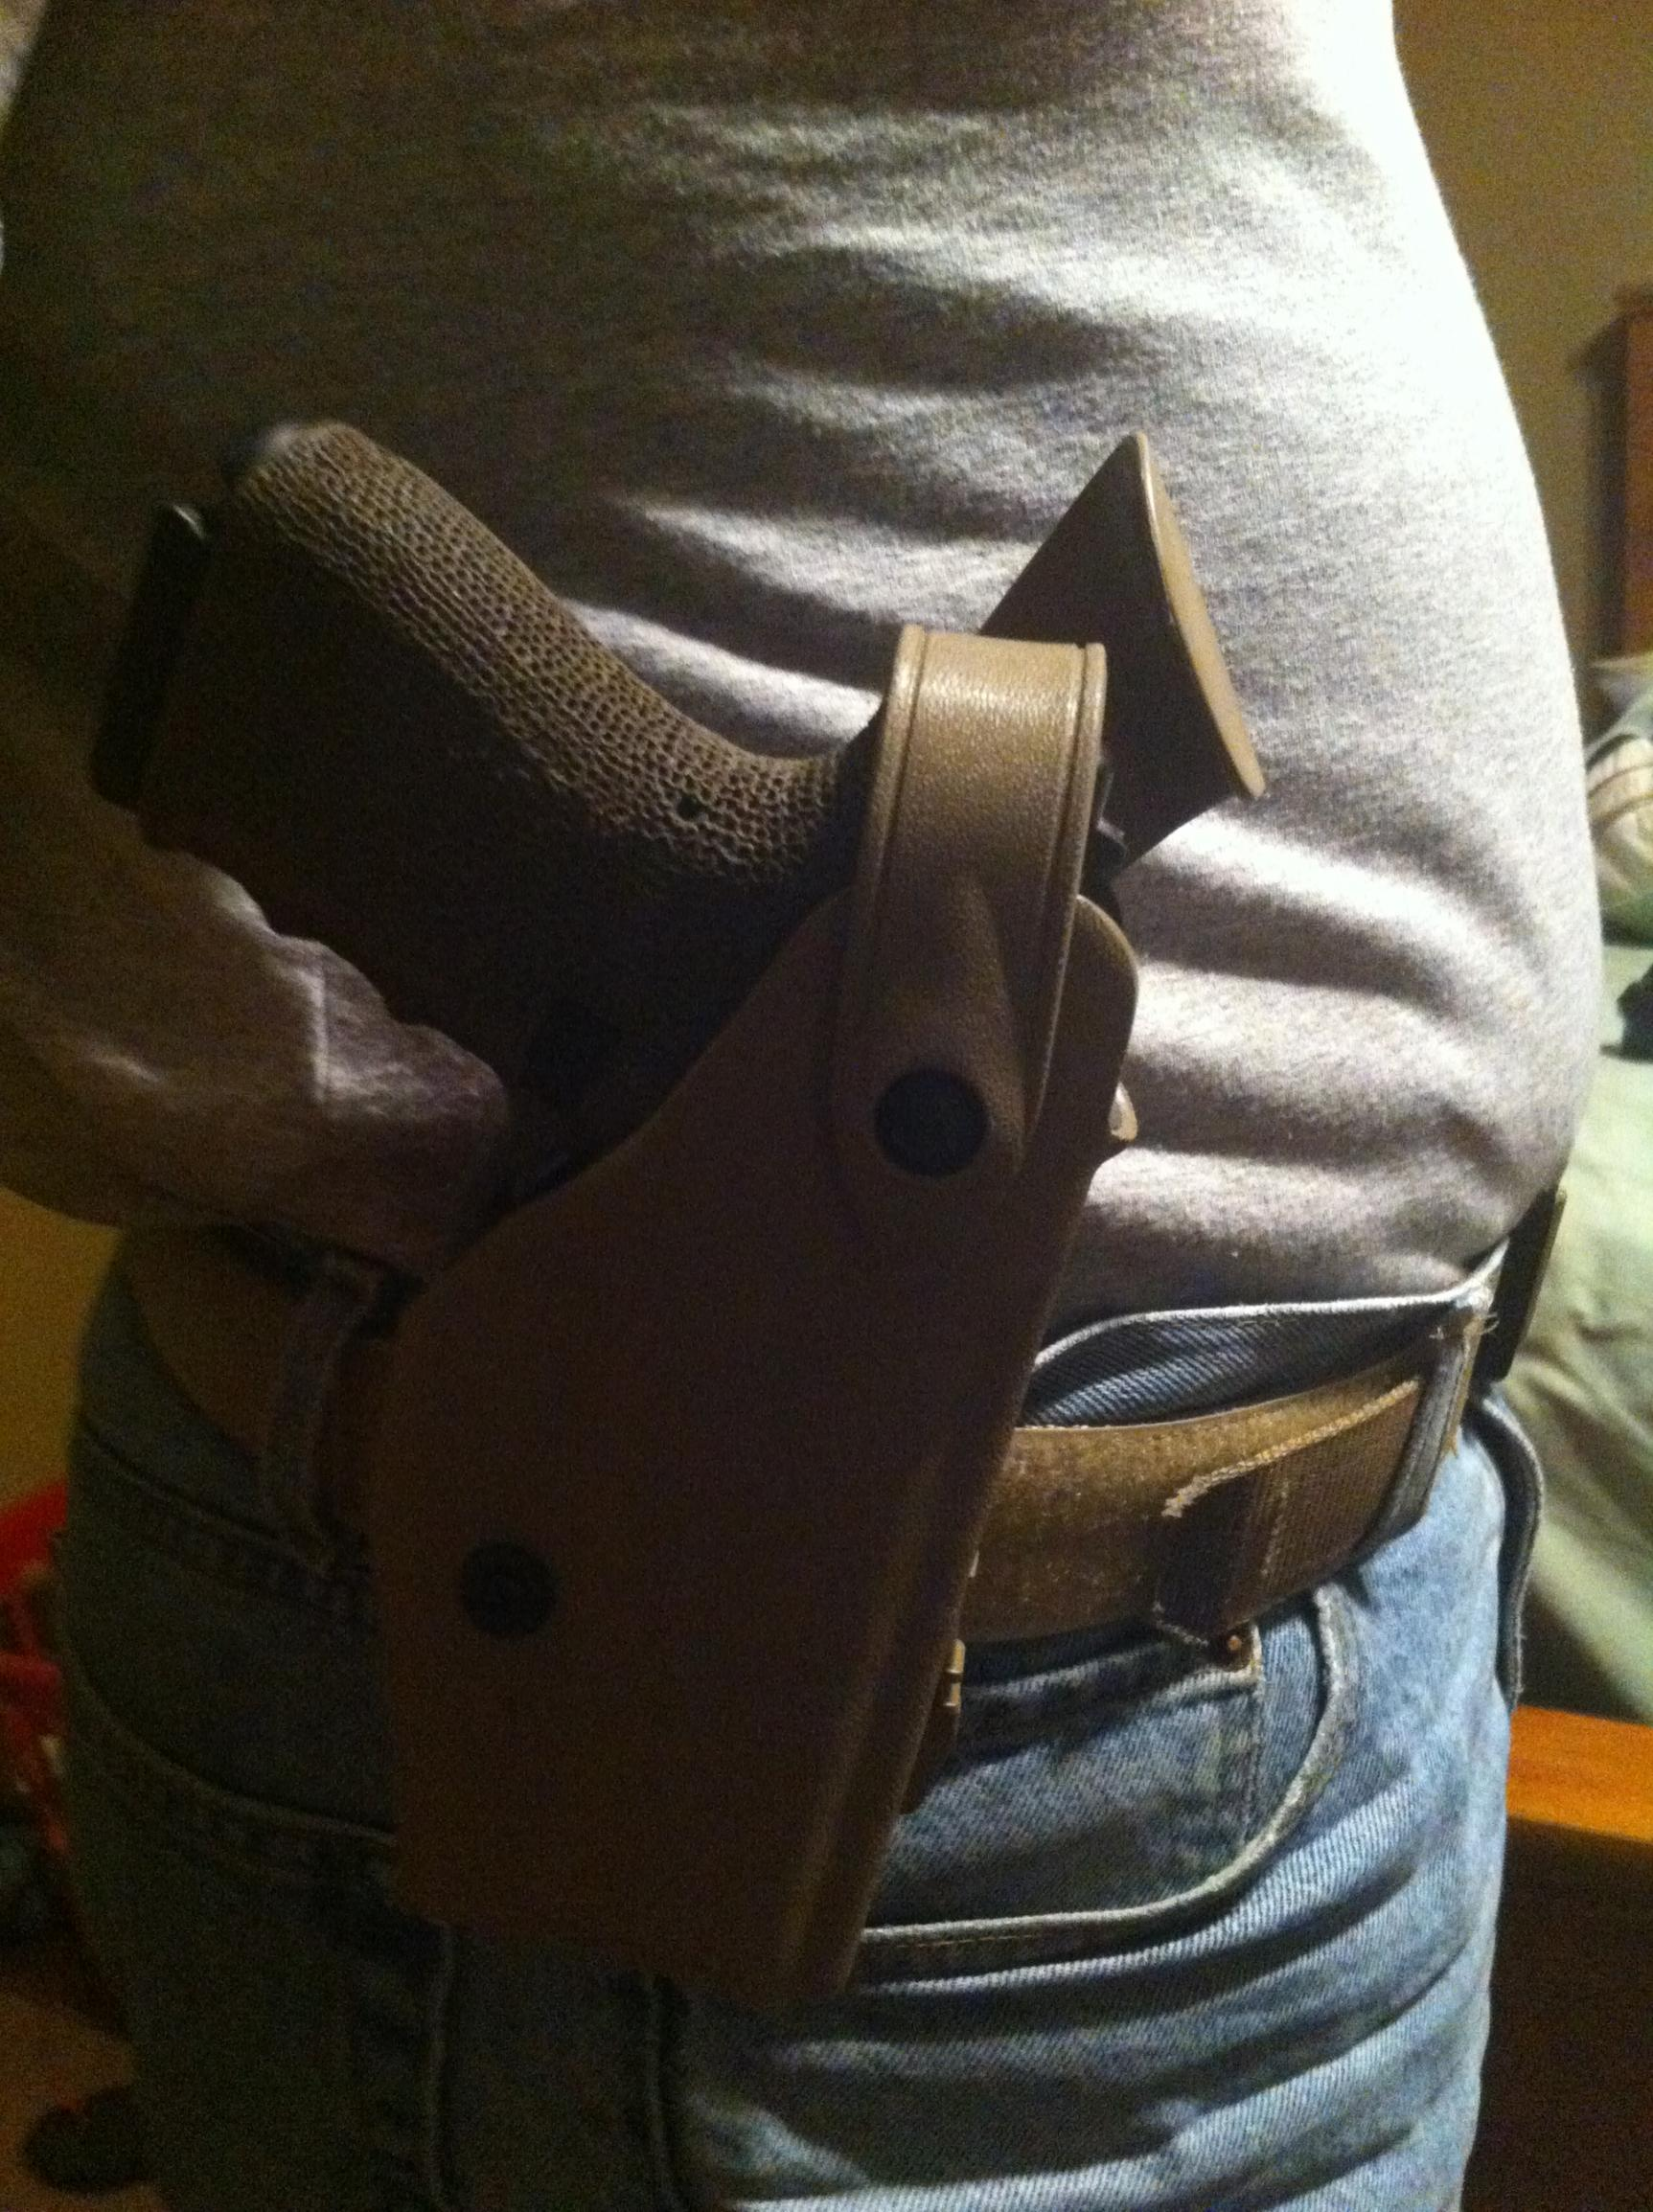 Defensive carry method, when carrying openly -- sidearms, long guns-holsters-004.jpg